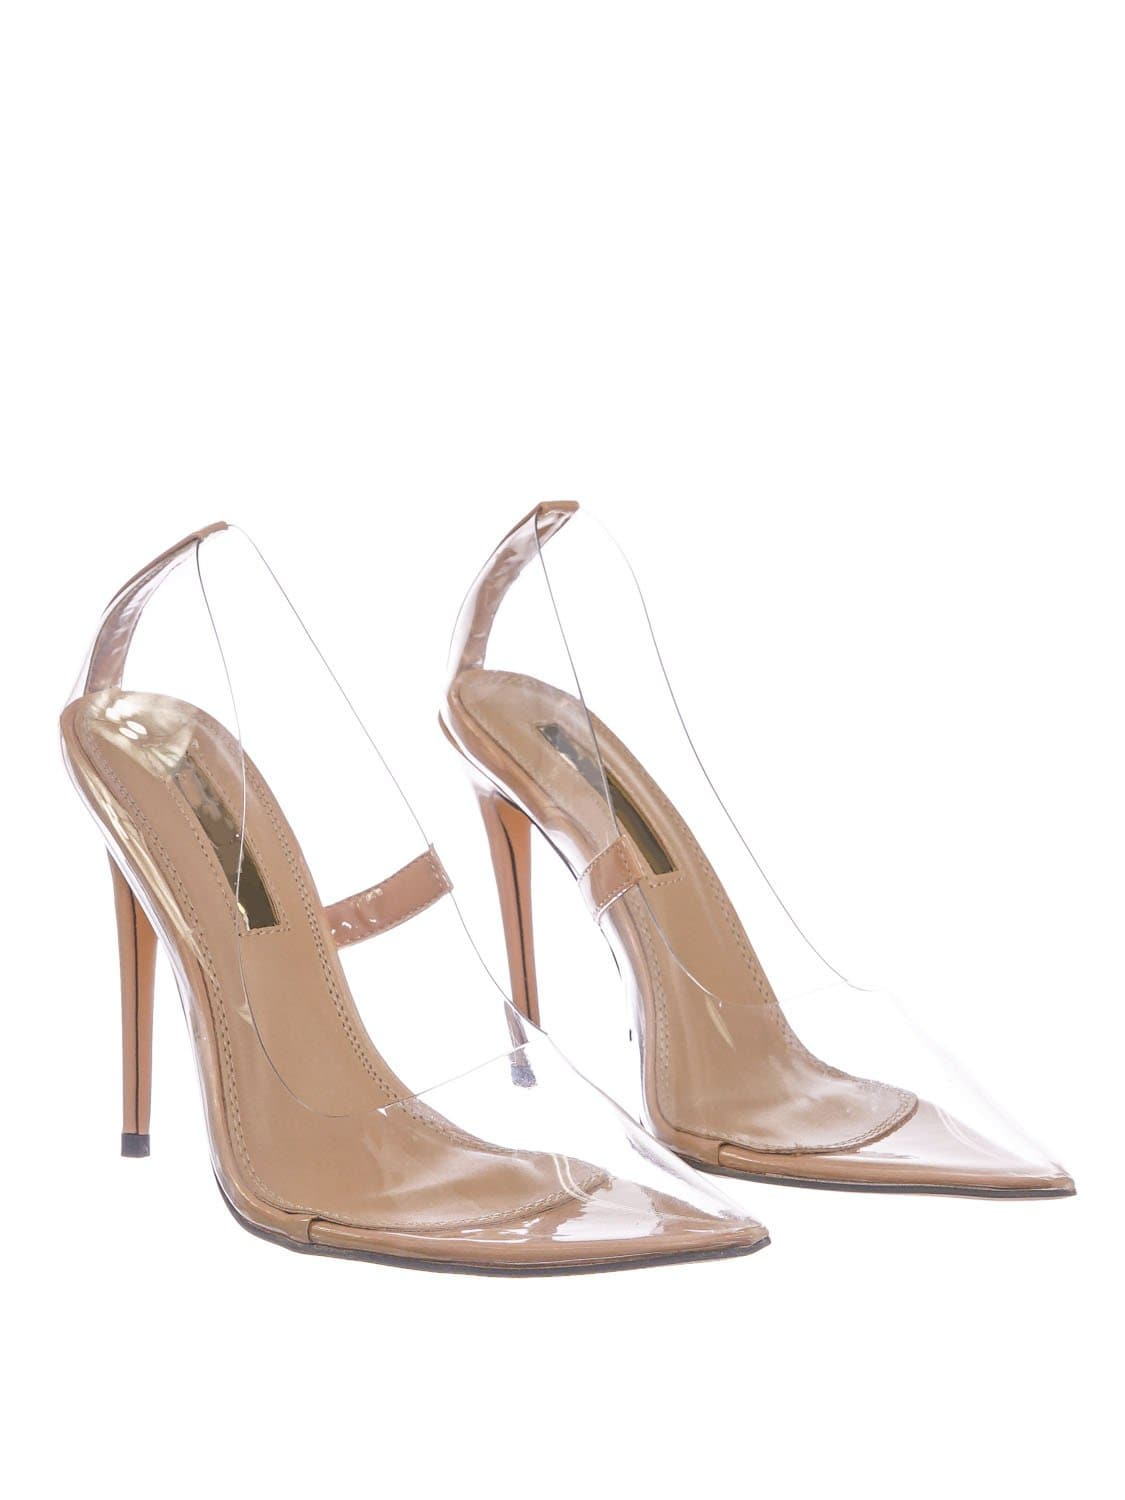 Kimye1 Nude Lucite Clear High Heel Dress Pump - Women Neon Pointed Toe Stiletto